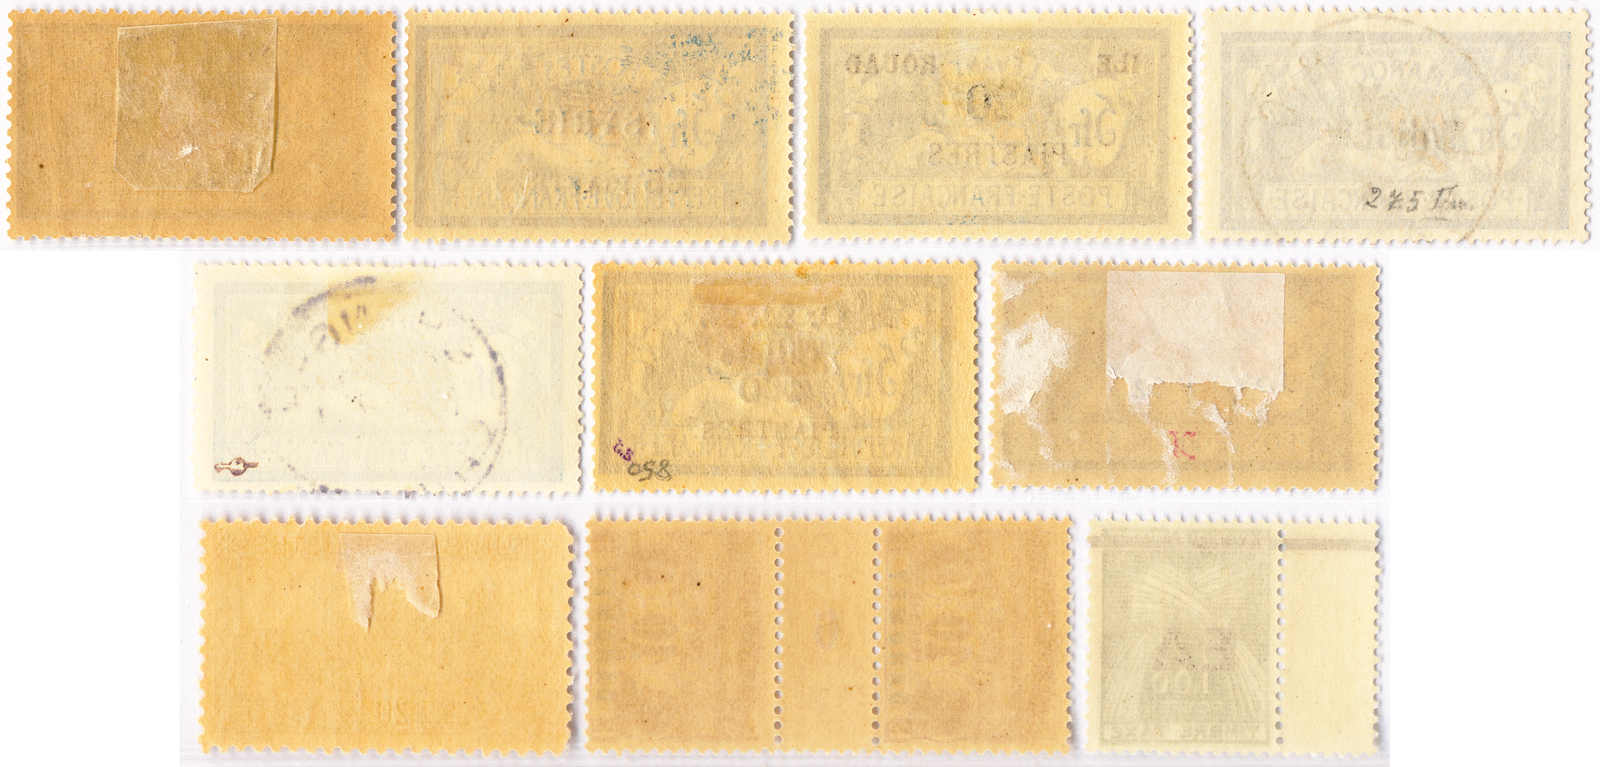 Lot 10131 - france and colonies Collections and Lots French Colonies -  Classicphil GmbH Auction #1